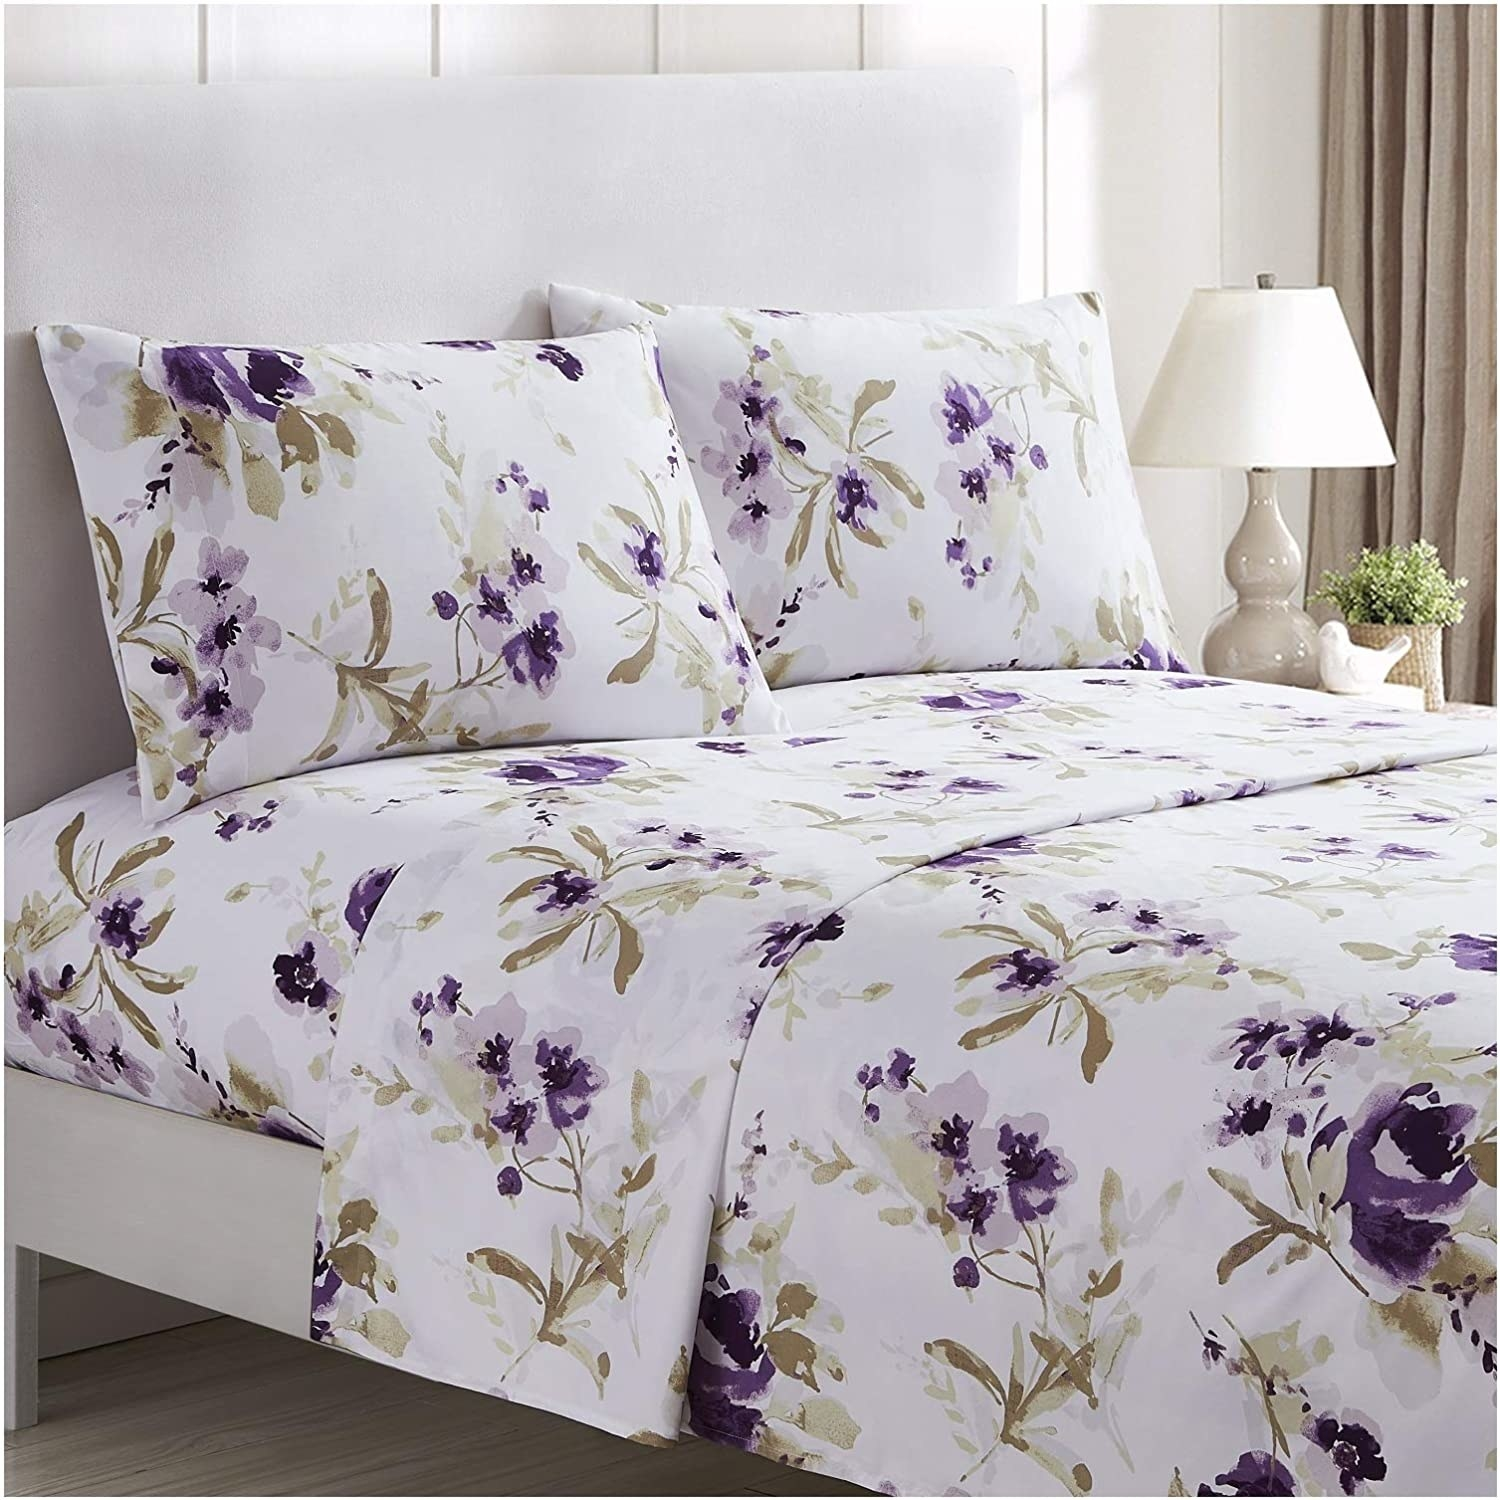 A bed made up with the Mellanni Bed Sheet Set in Madison Purple.